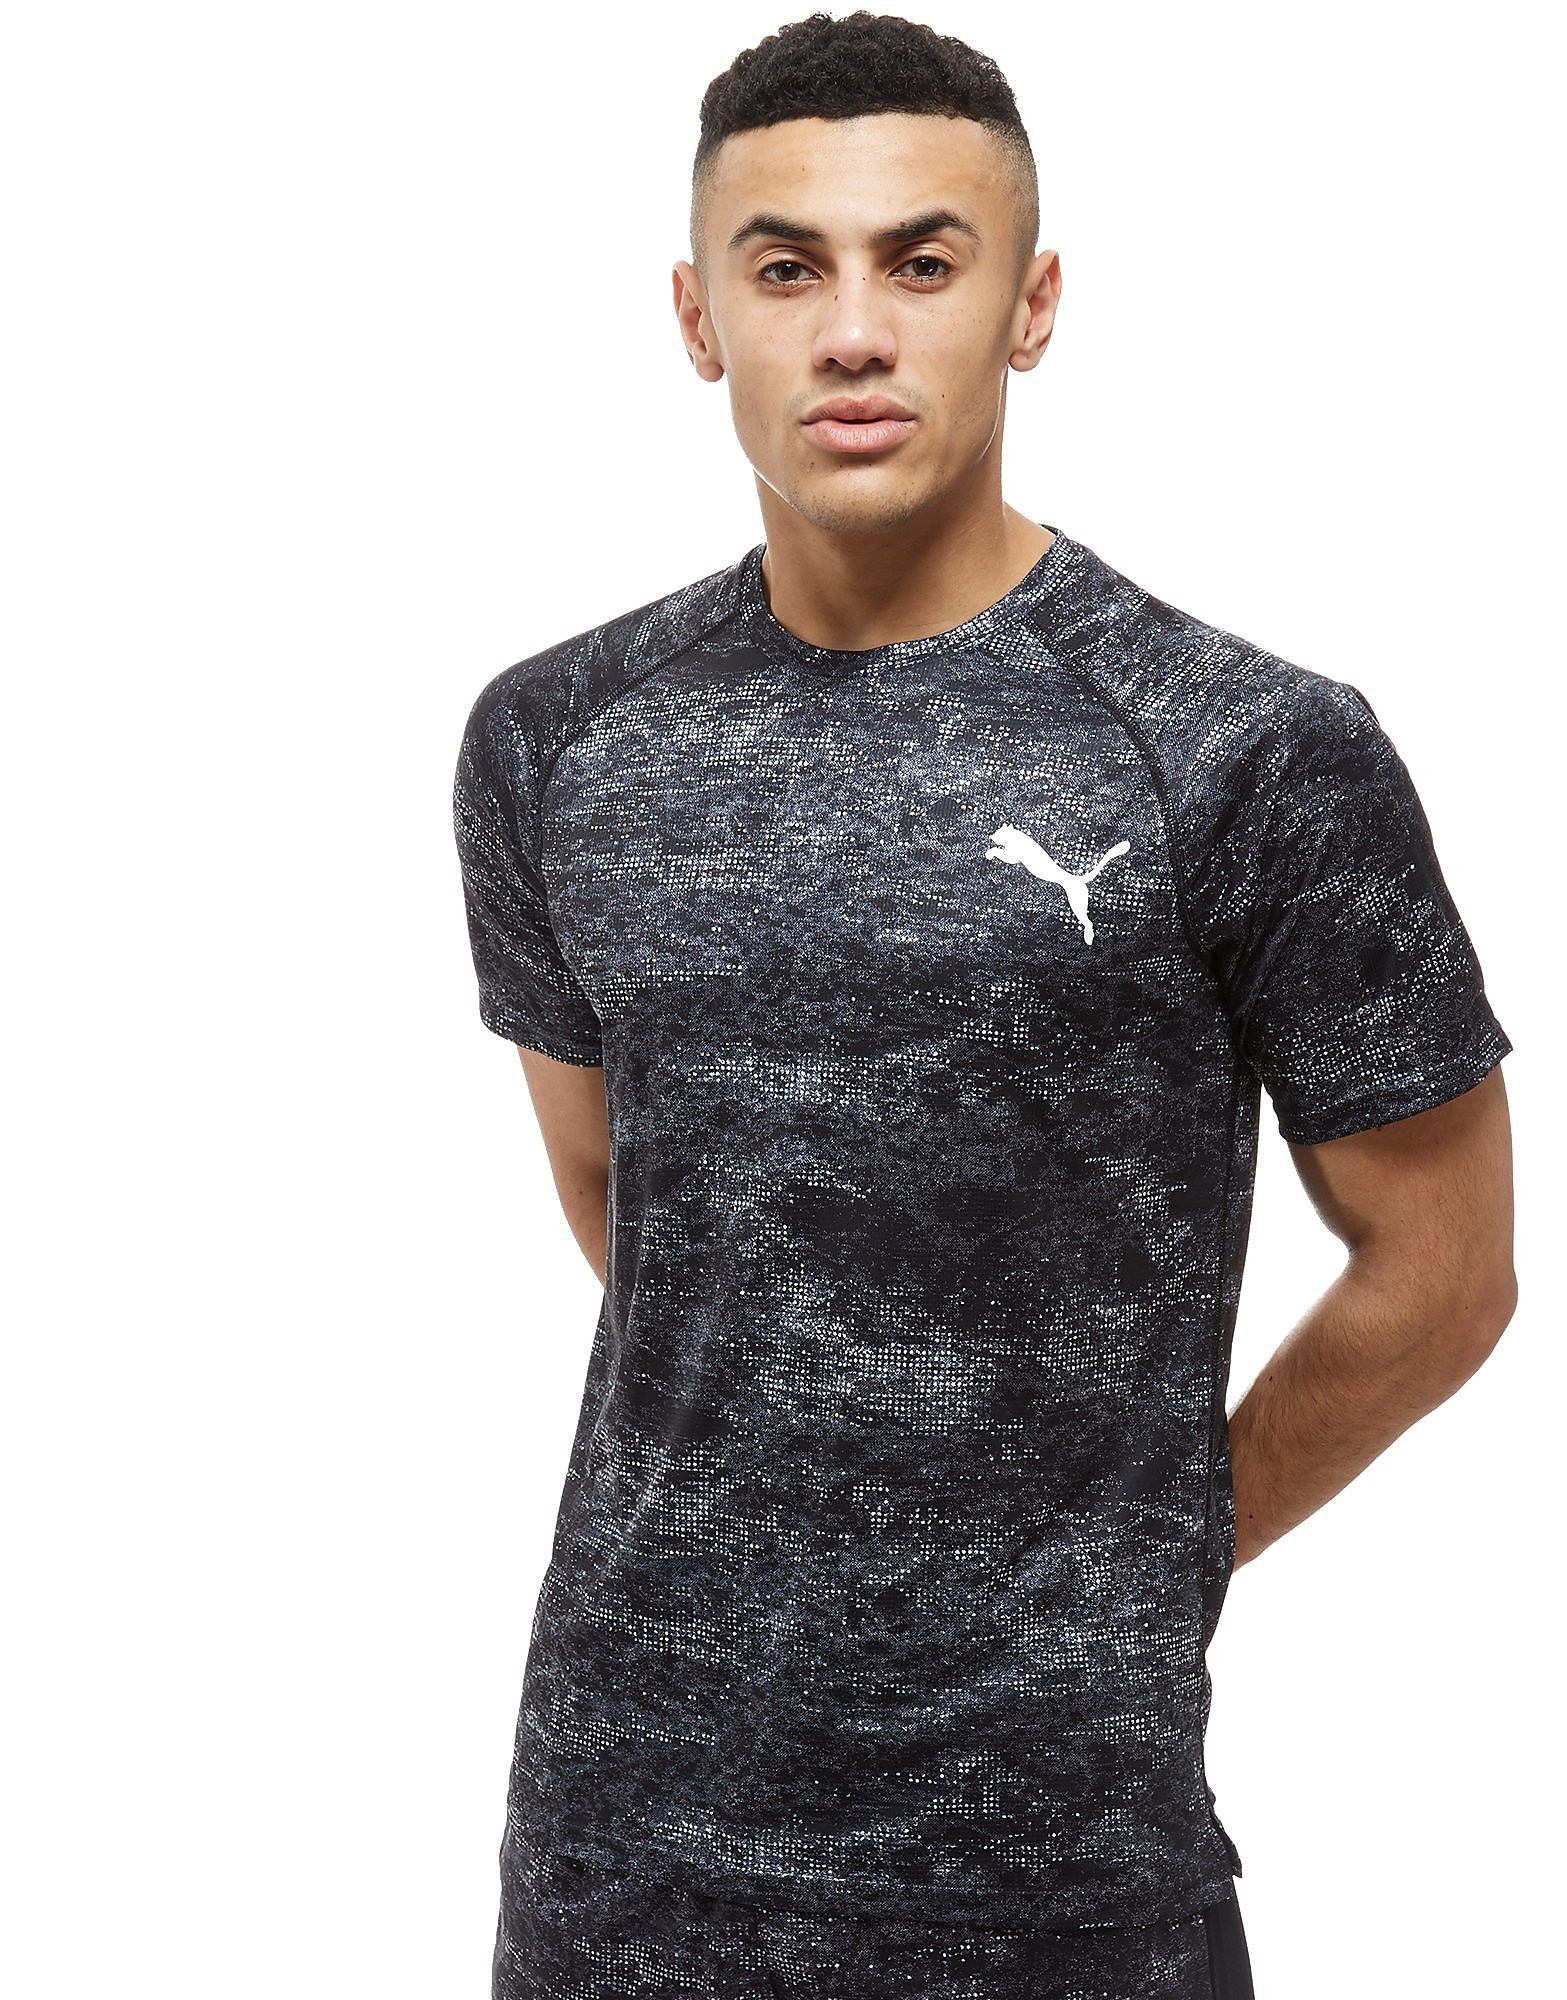 PUMA Camo Graphic T-Shirt